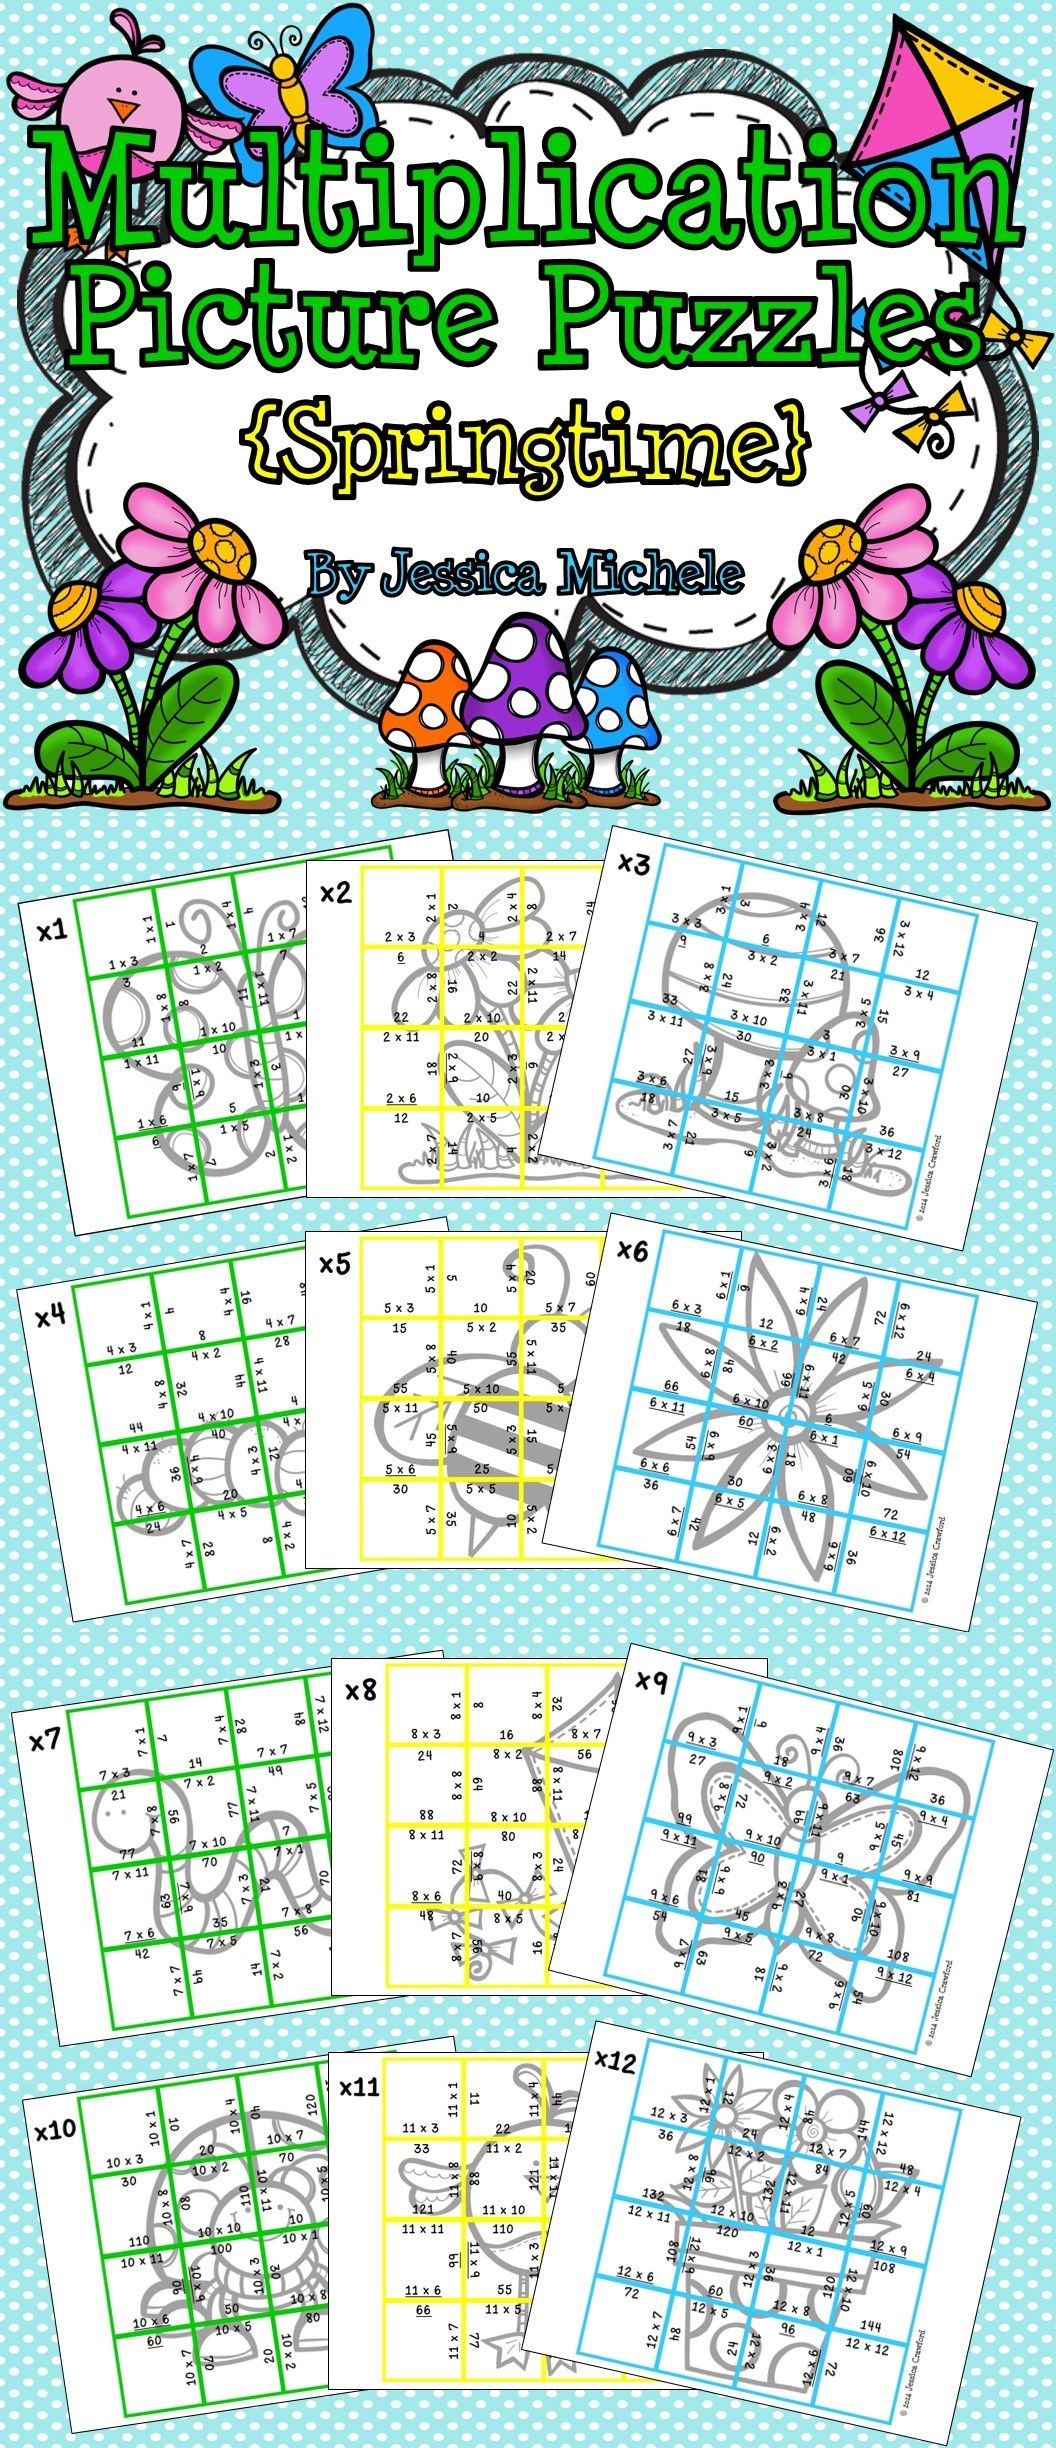 Multiplication Picture Puzzles Springtime